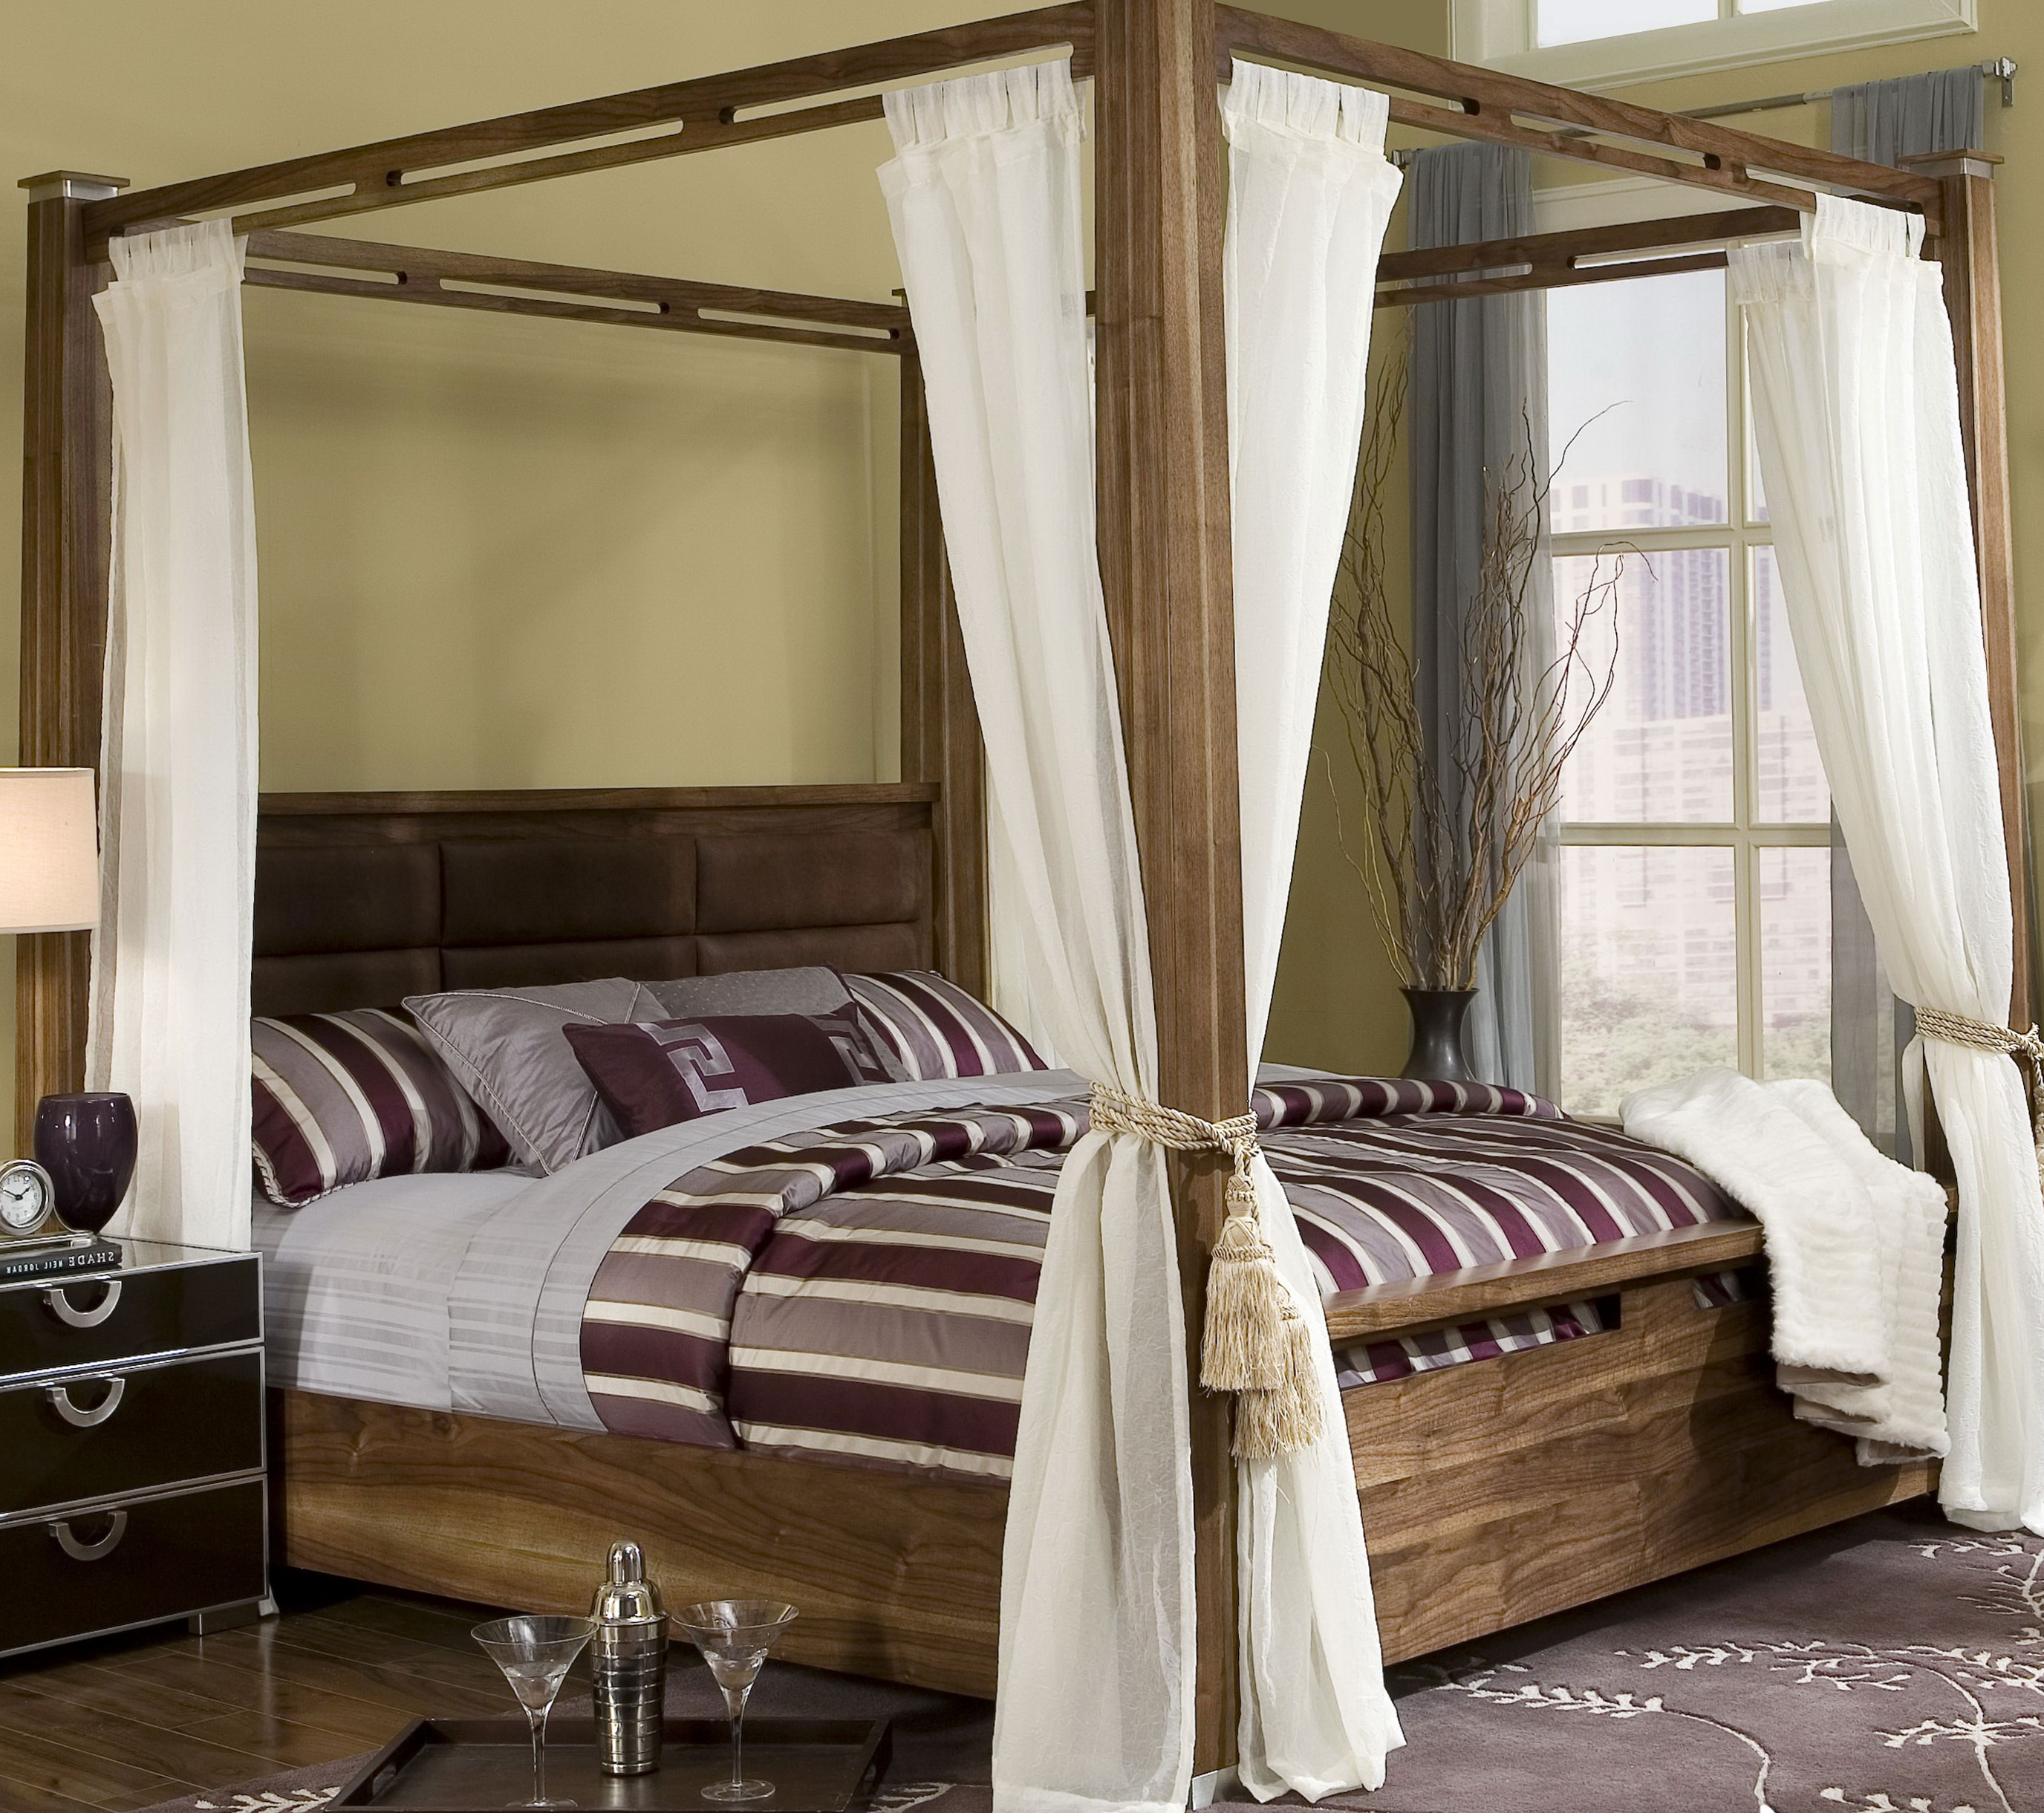 King Size Canopy Bed With Storage